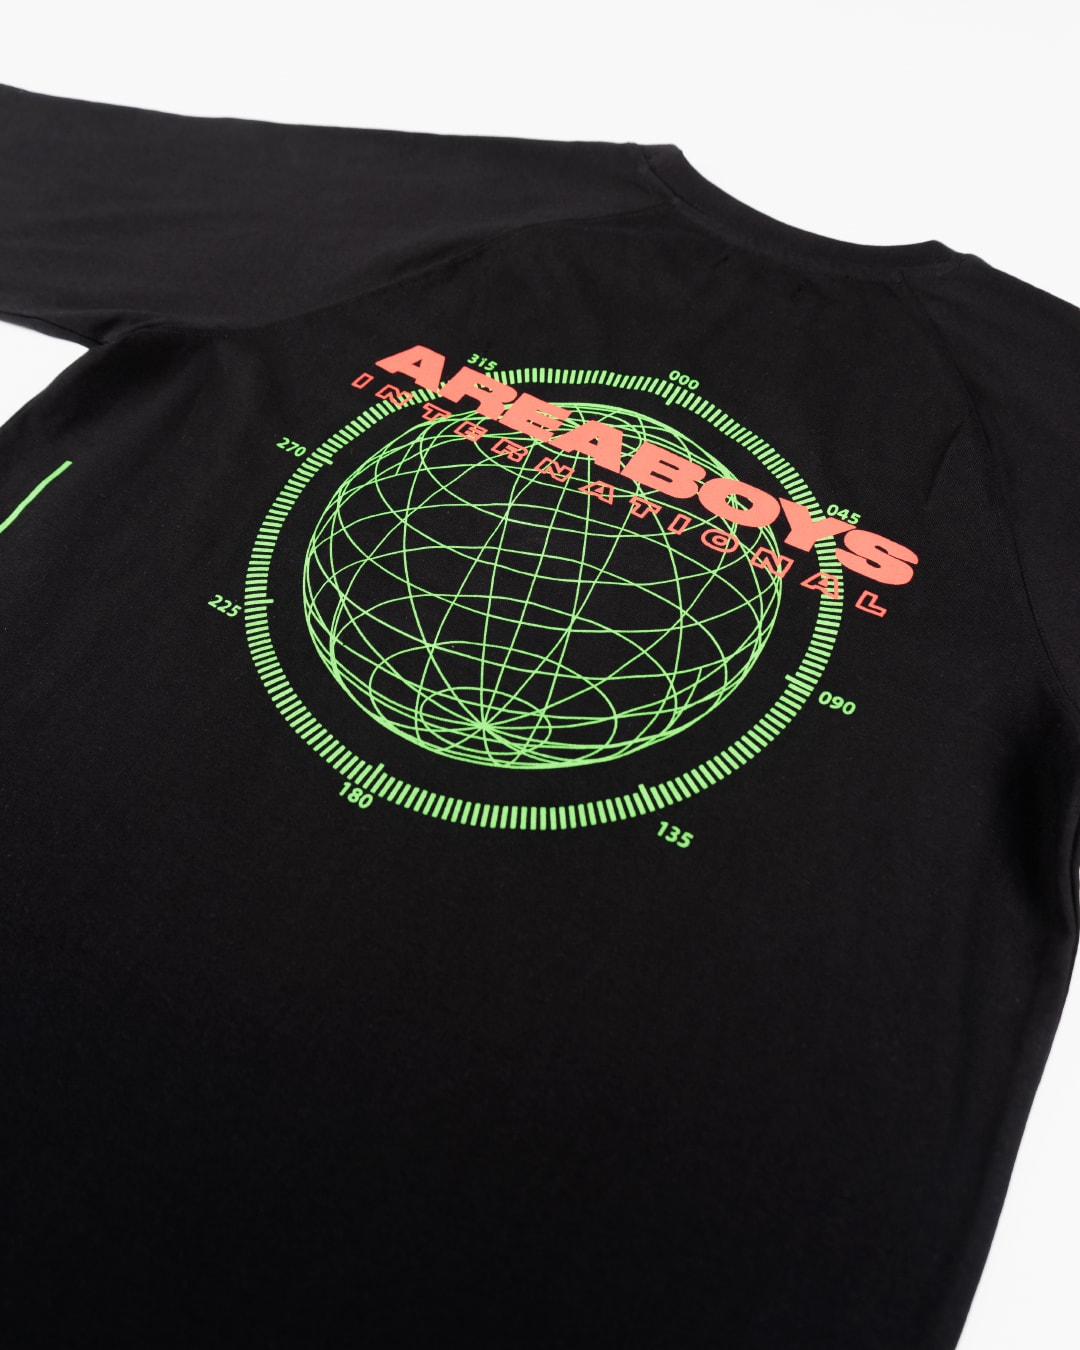 Area Boys International - Black Location T-Shirt